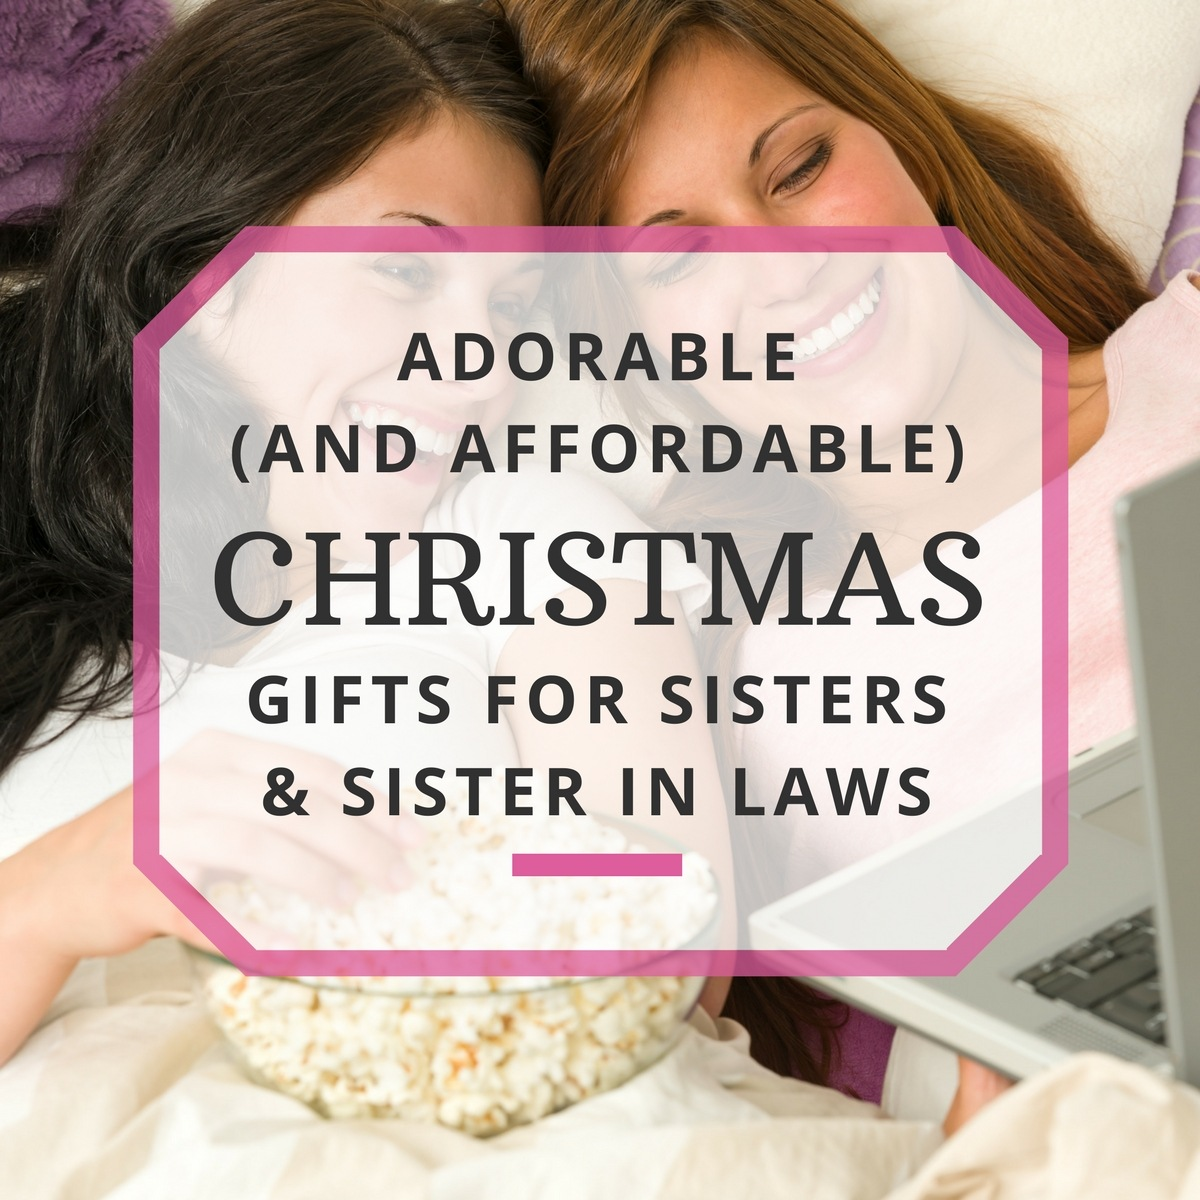 Super manly uncle gift ideas the best gifts for uncles adorable and affordable christmas gifts for sisters sister in laws negle Choice Image